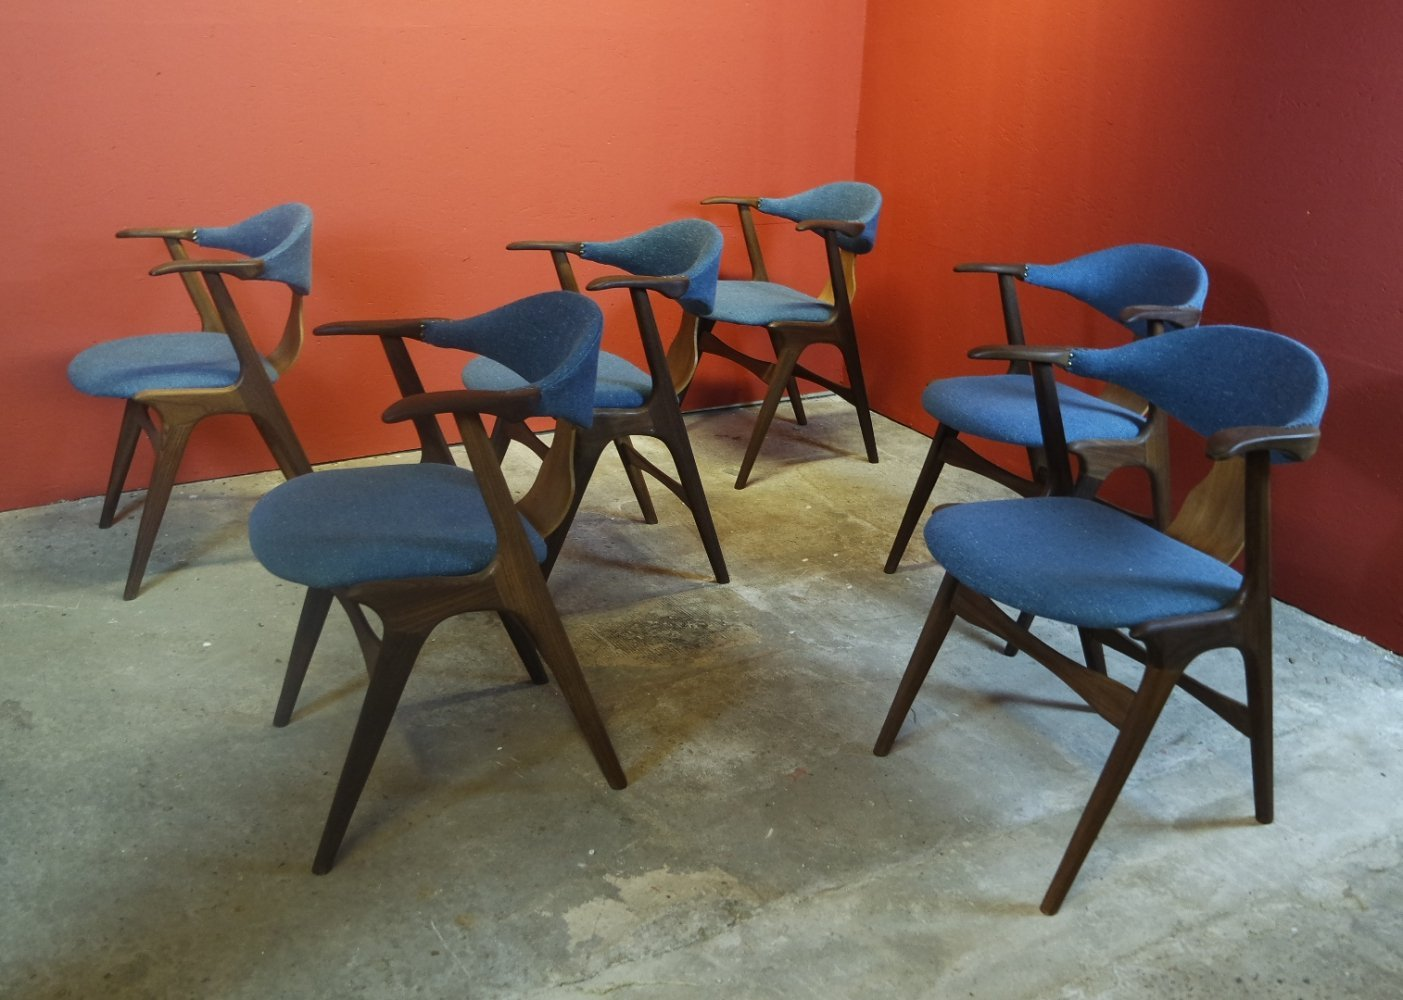 Set of 6 Cowhorn dining chairs by Louis van Teeffelen for Wébé, 1950s